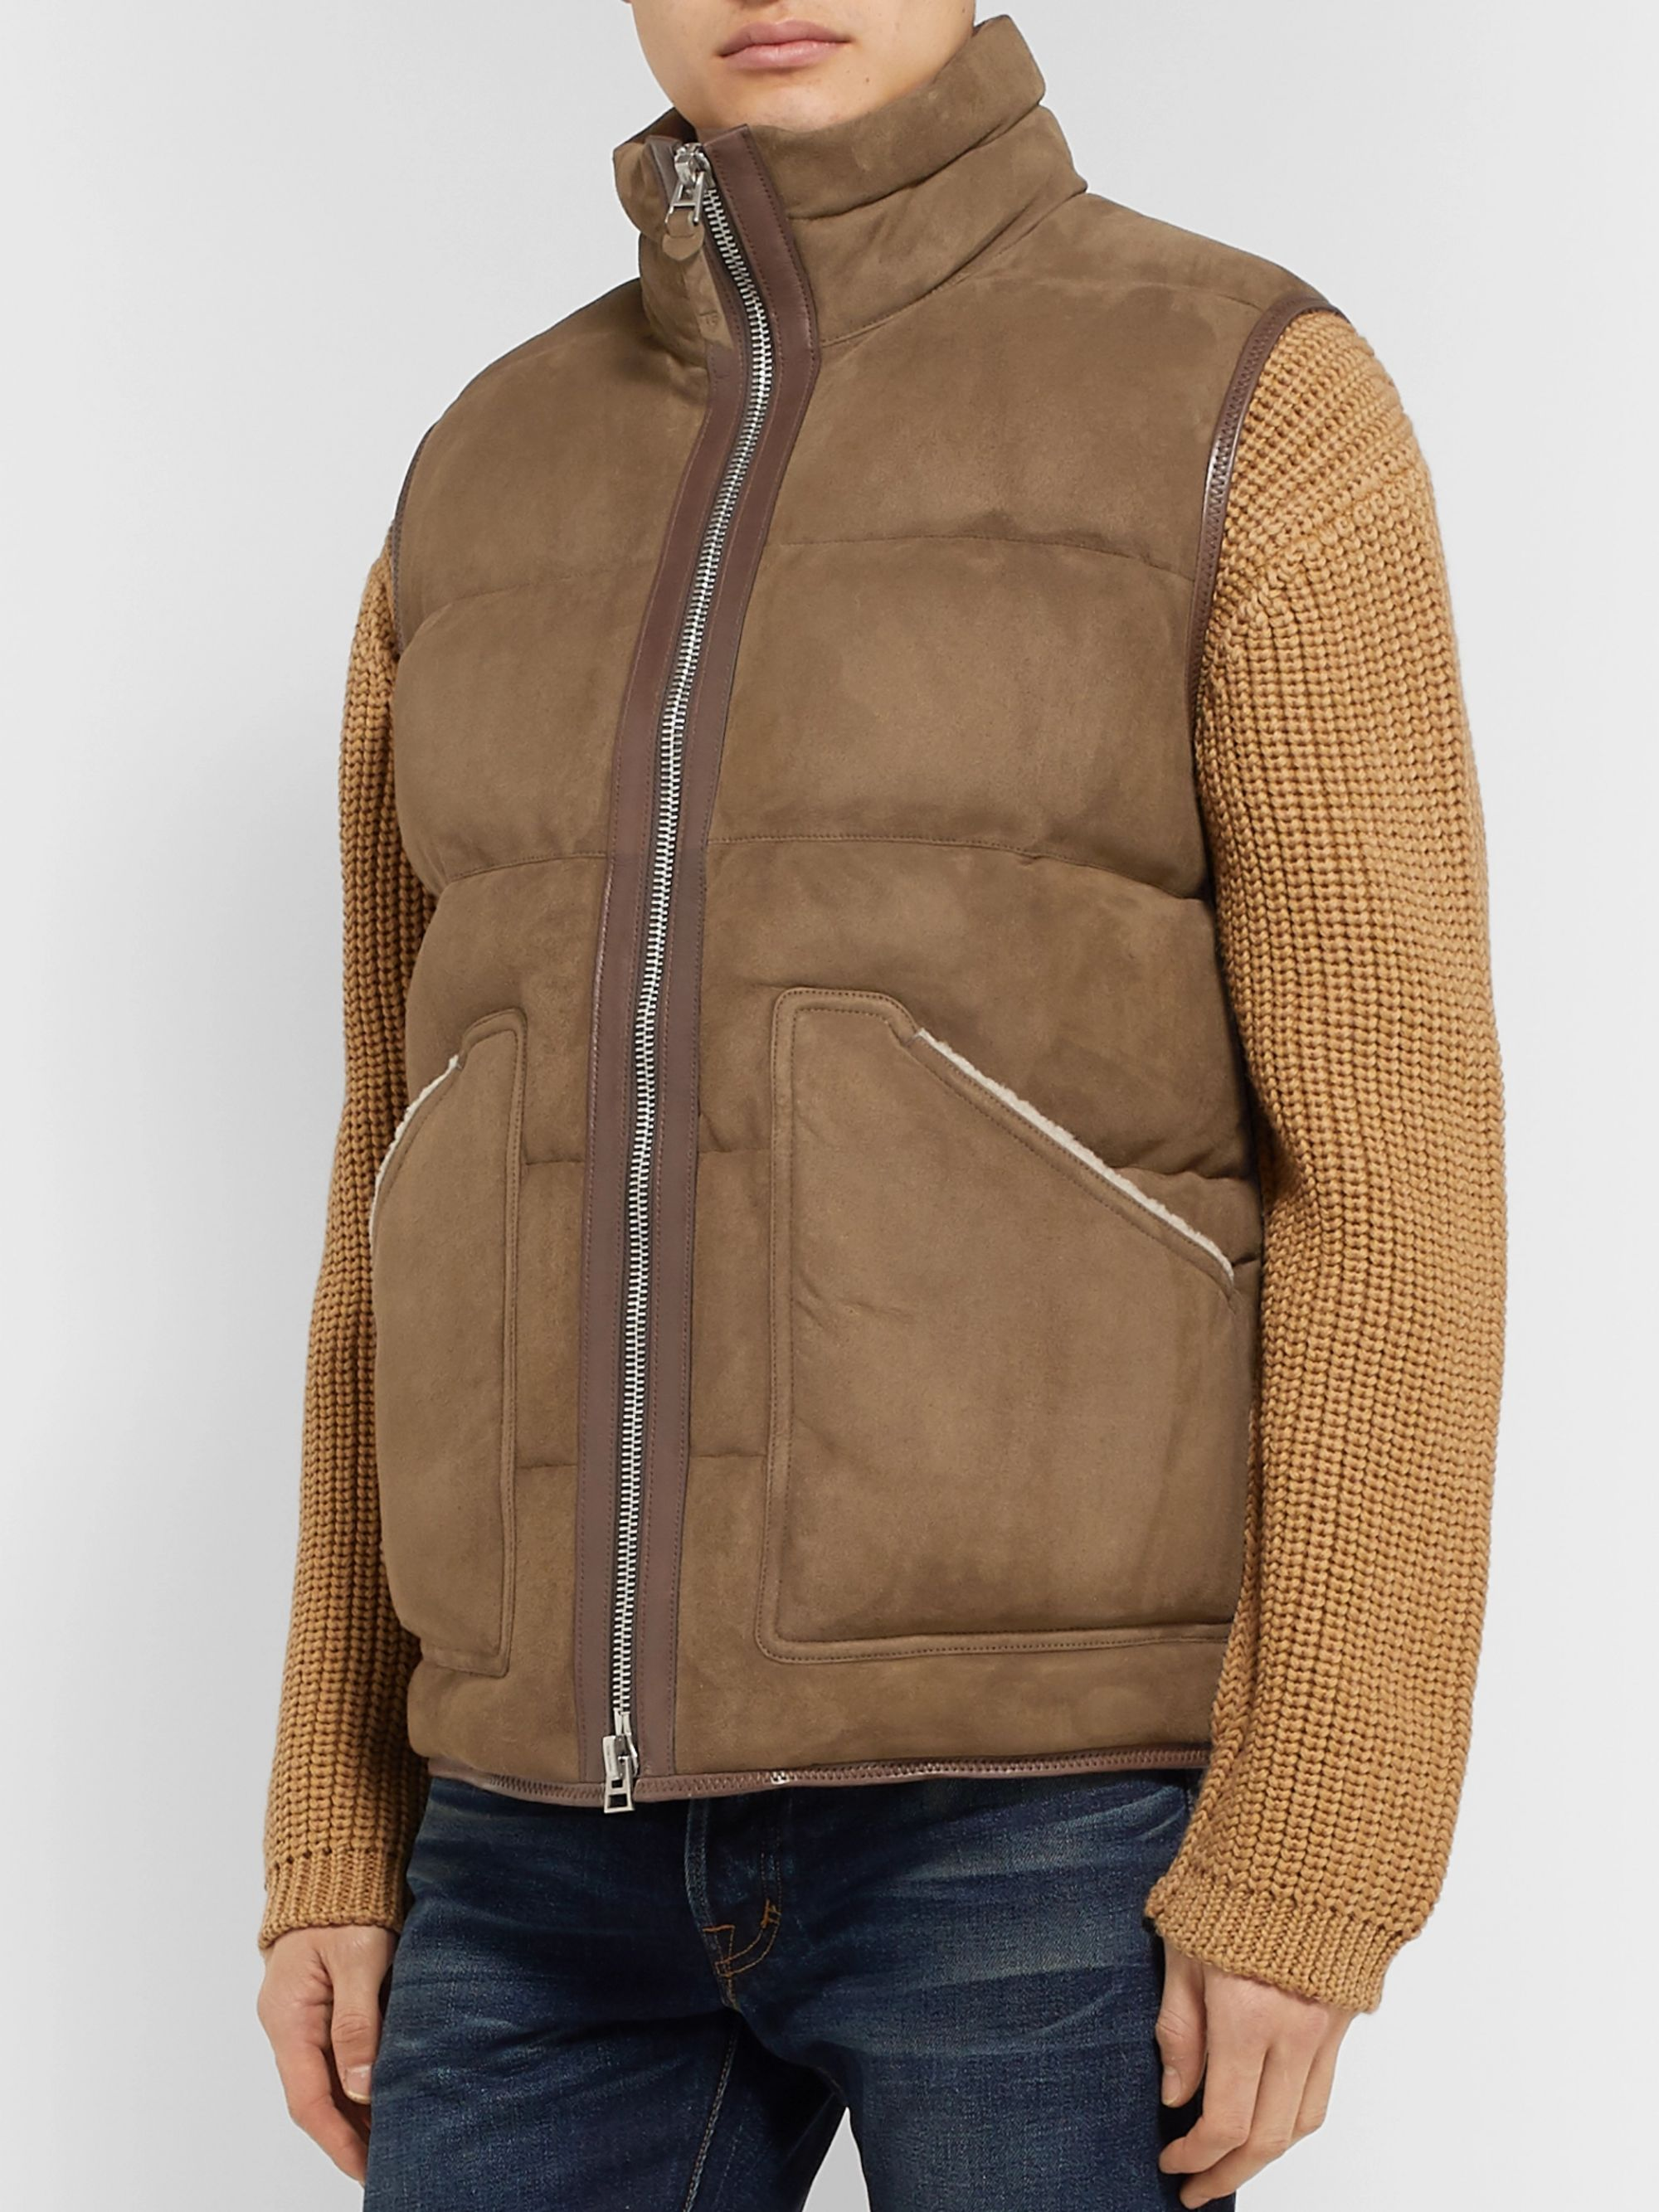 TOM FORD Shearling and Leather-Trimmed Quilted Suede Gilet